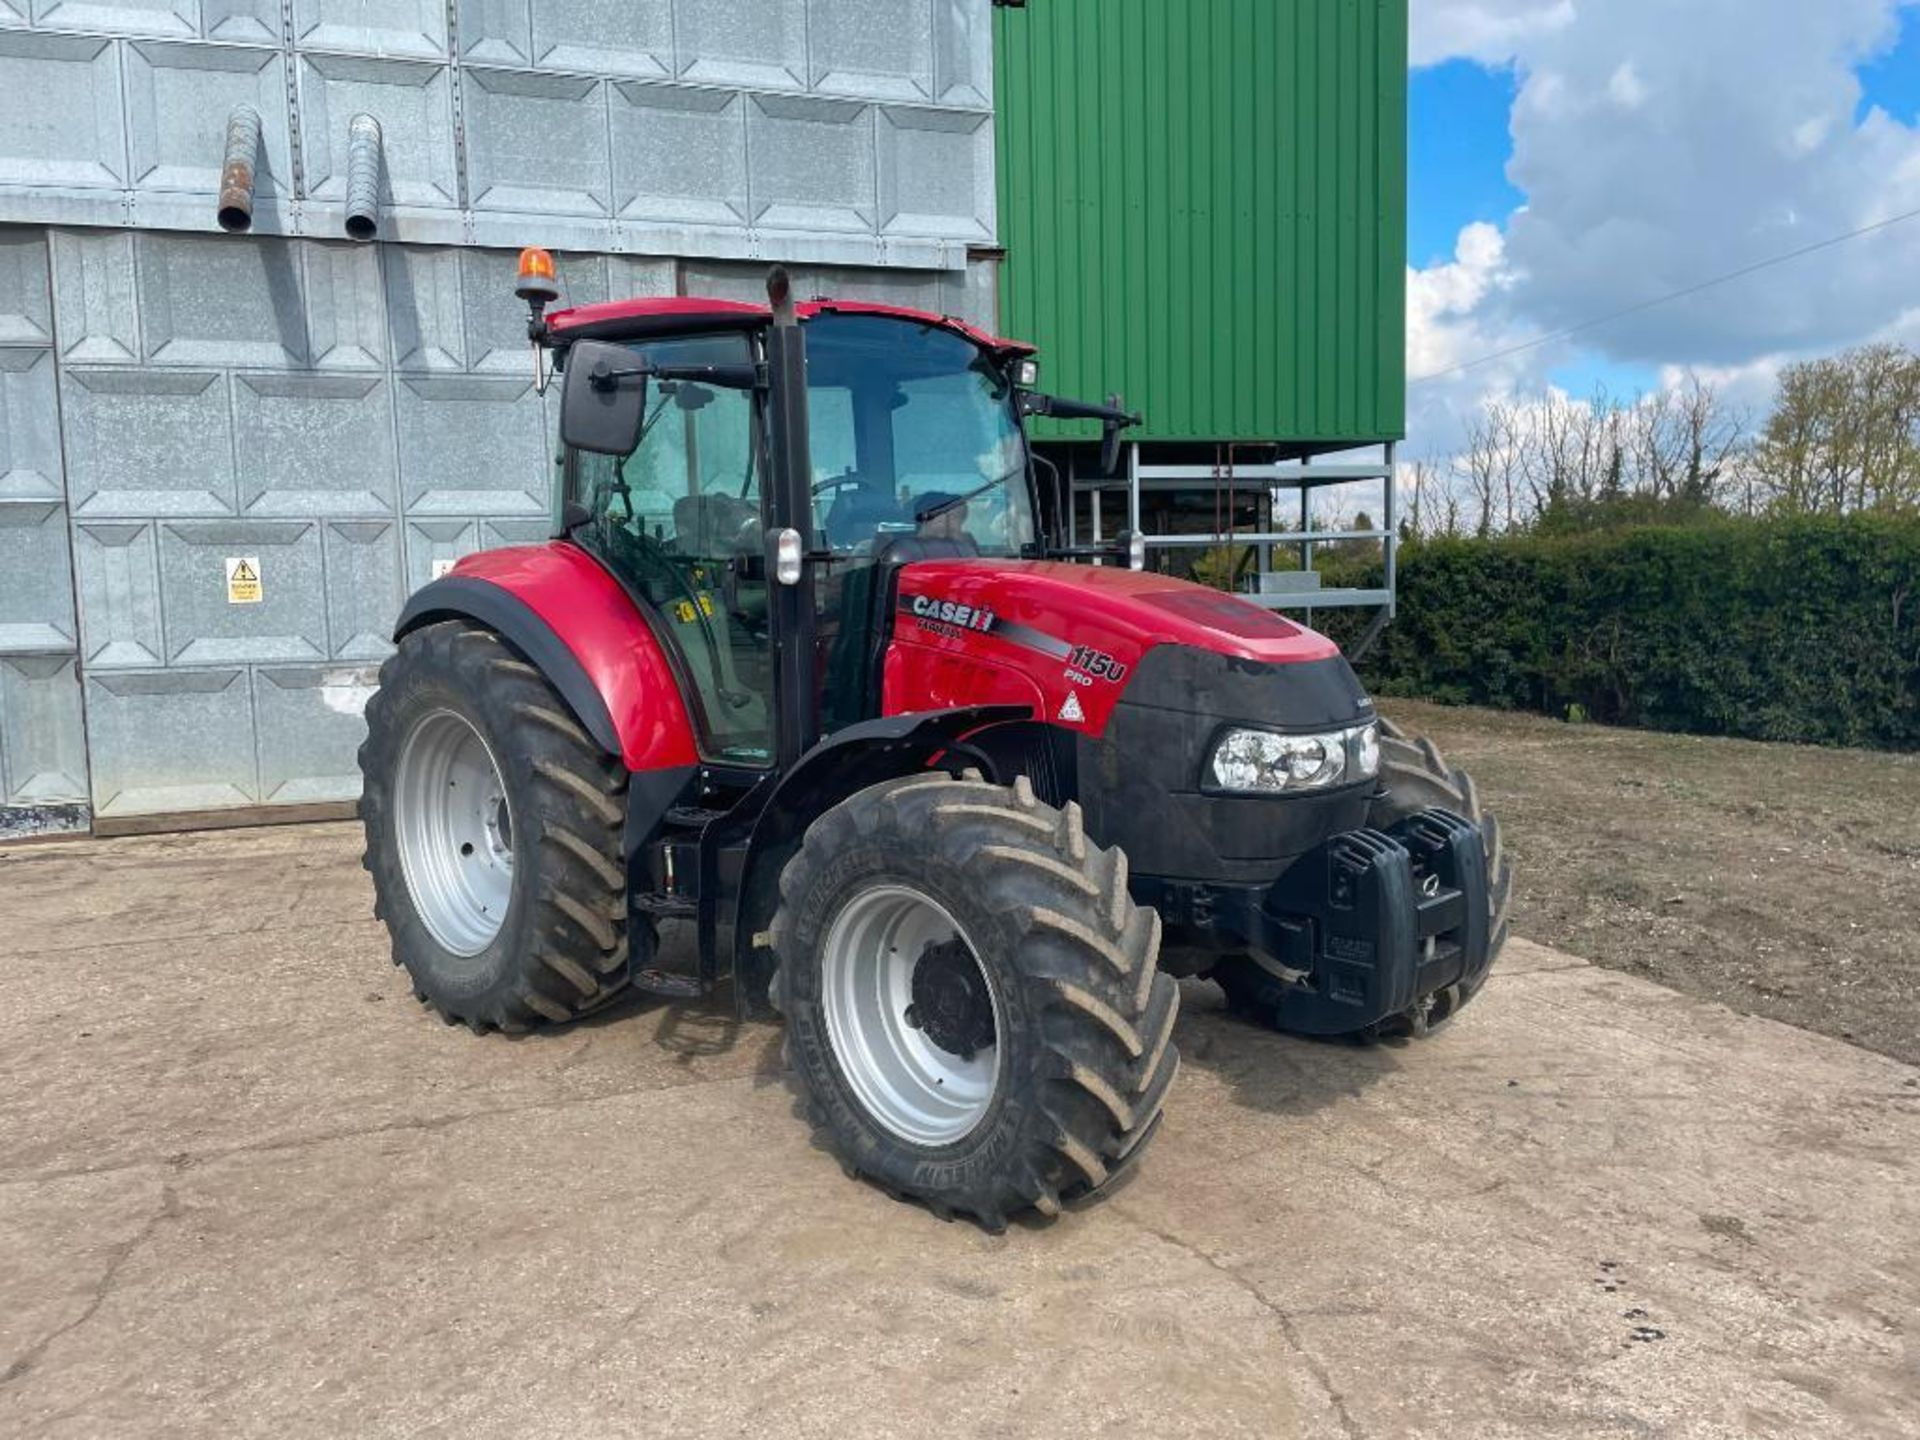 2014 Case IH Farmall 115U PRO 40Kph 4wd tractor with 2 spools, PUH on 440/65R24 front and 540/65R34 - Image 7 of 10